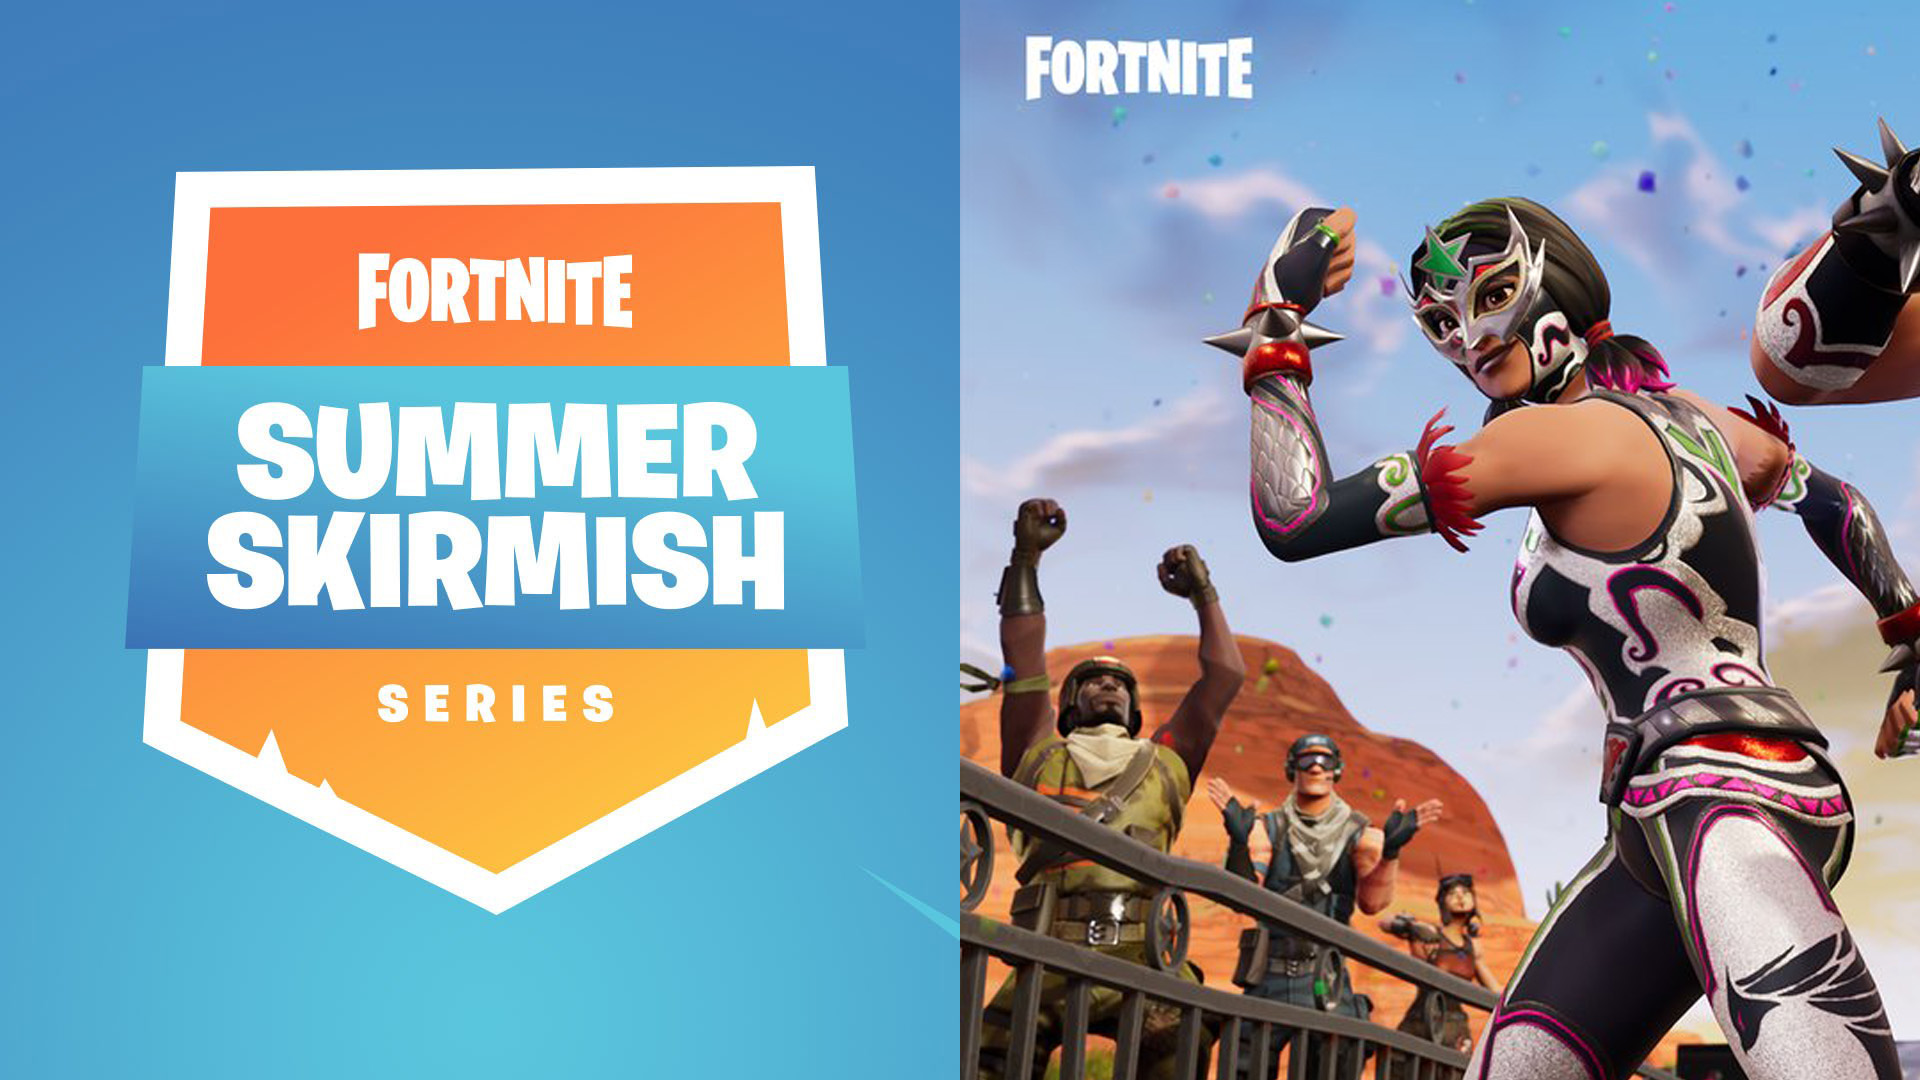 fortnite summer skirmish week 2 500k solo tournament standings bracket rules - 500k tourney fortnite